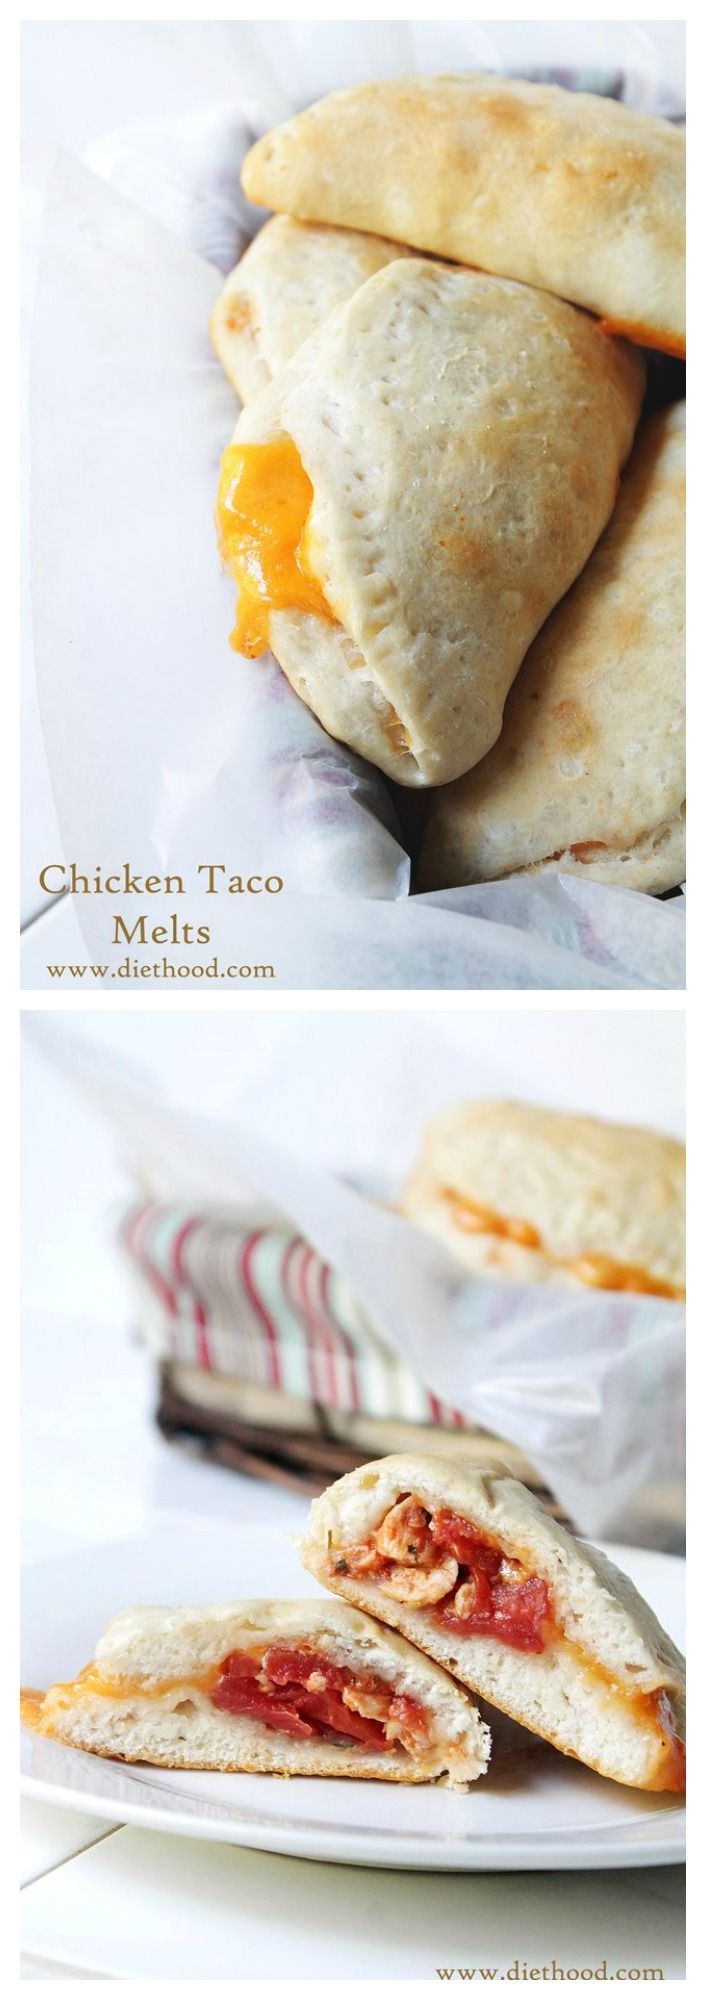 Chicken Taco Melts | www.diethood.com | Flavorful and ready-to-bake Biscuits filled with a delicious Chicken taco mixture and shredded cheeses. | #recipe #dinner